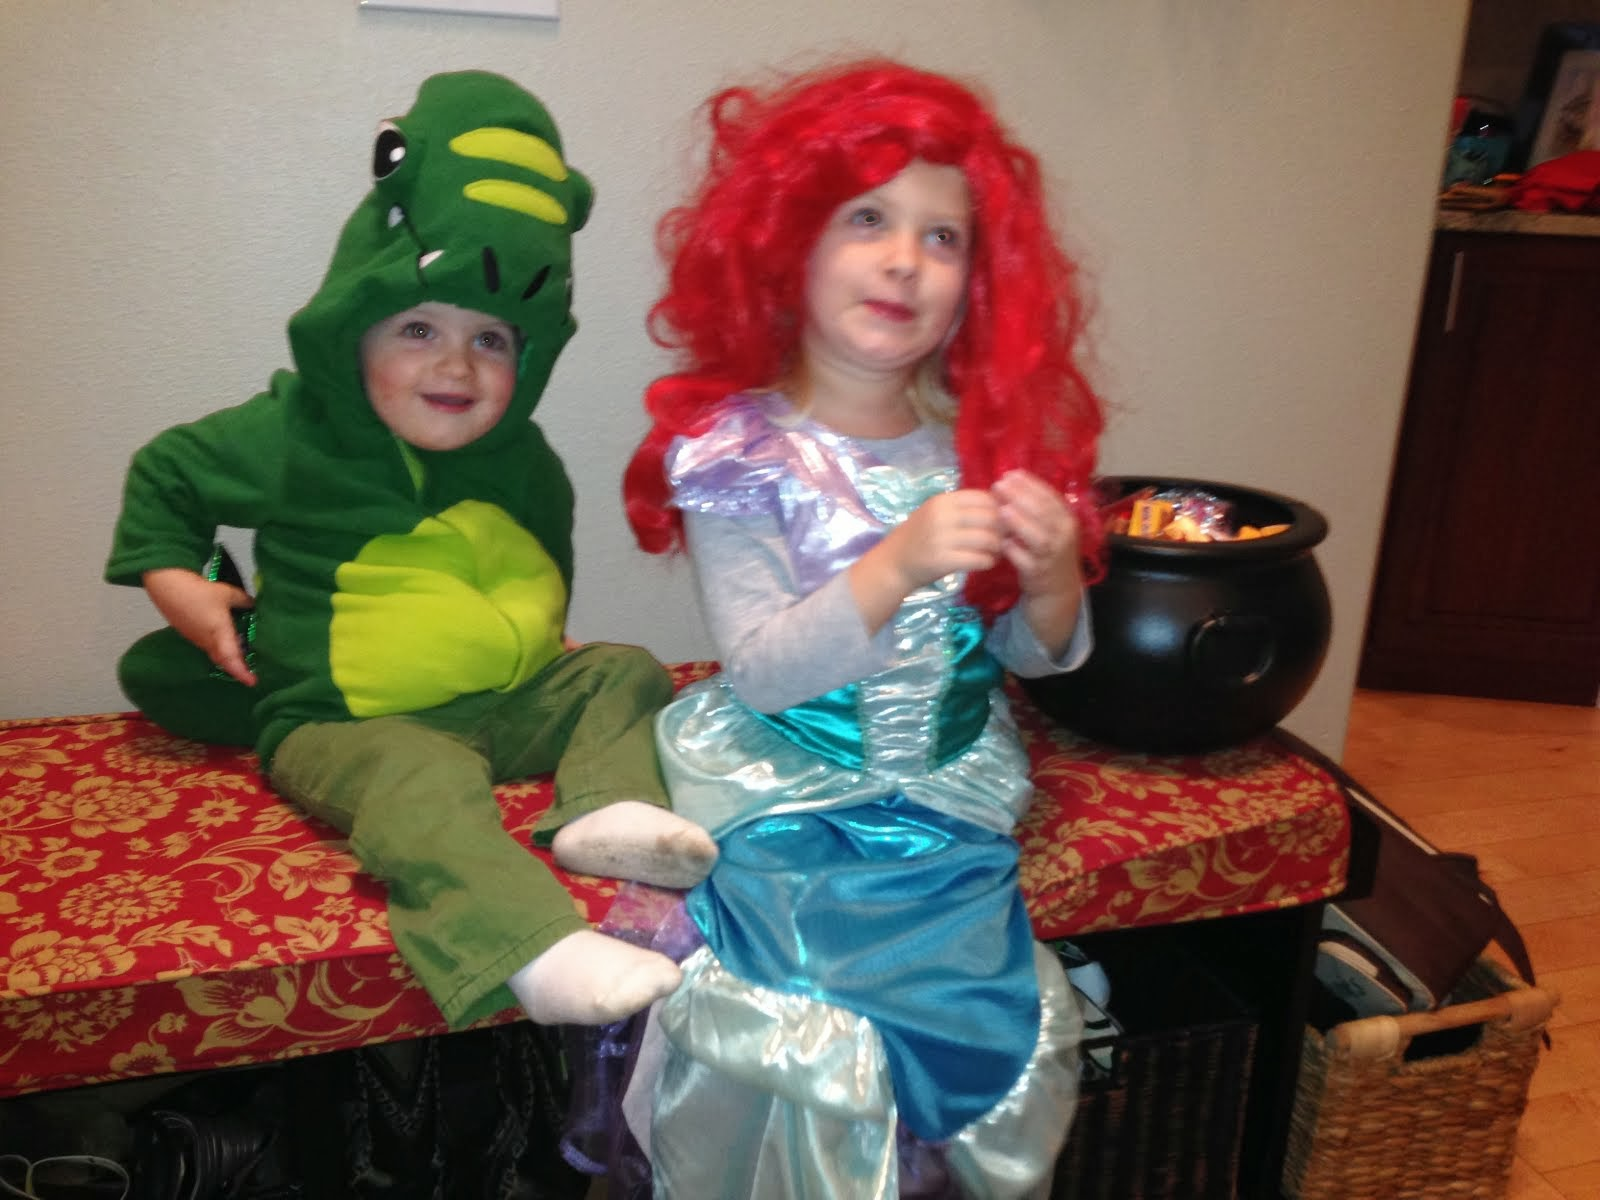 Halloween w/ Ariel and Green Dino